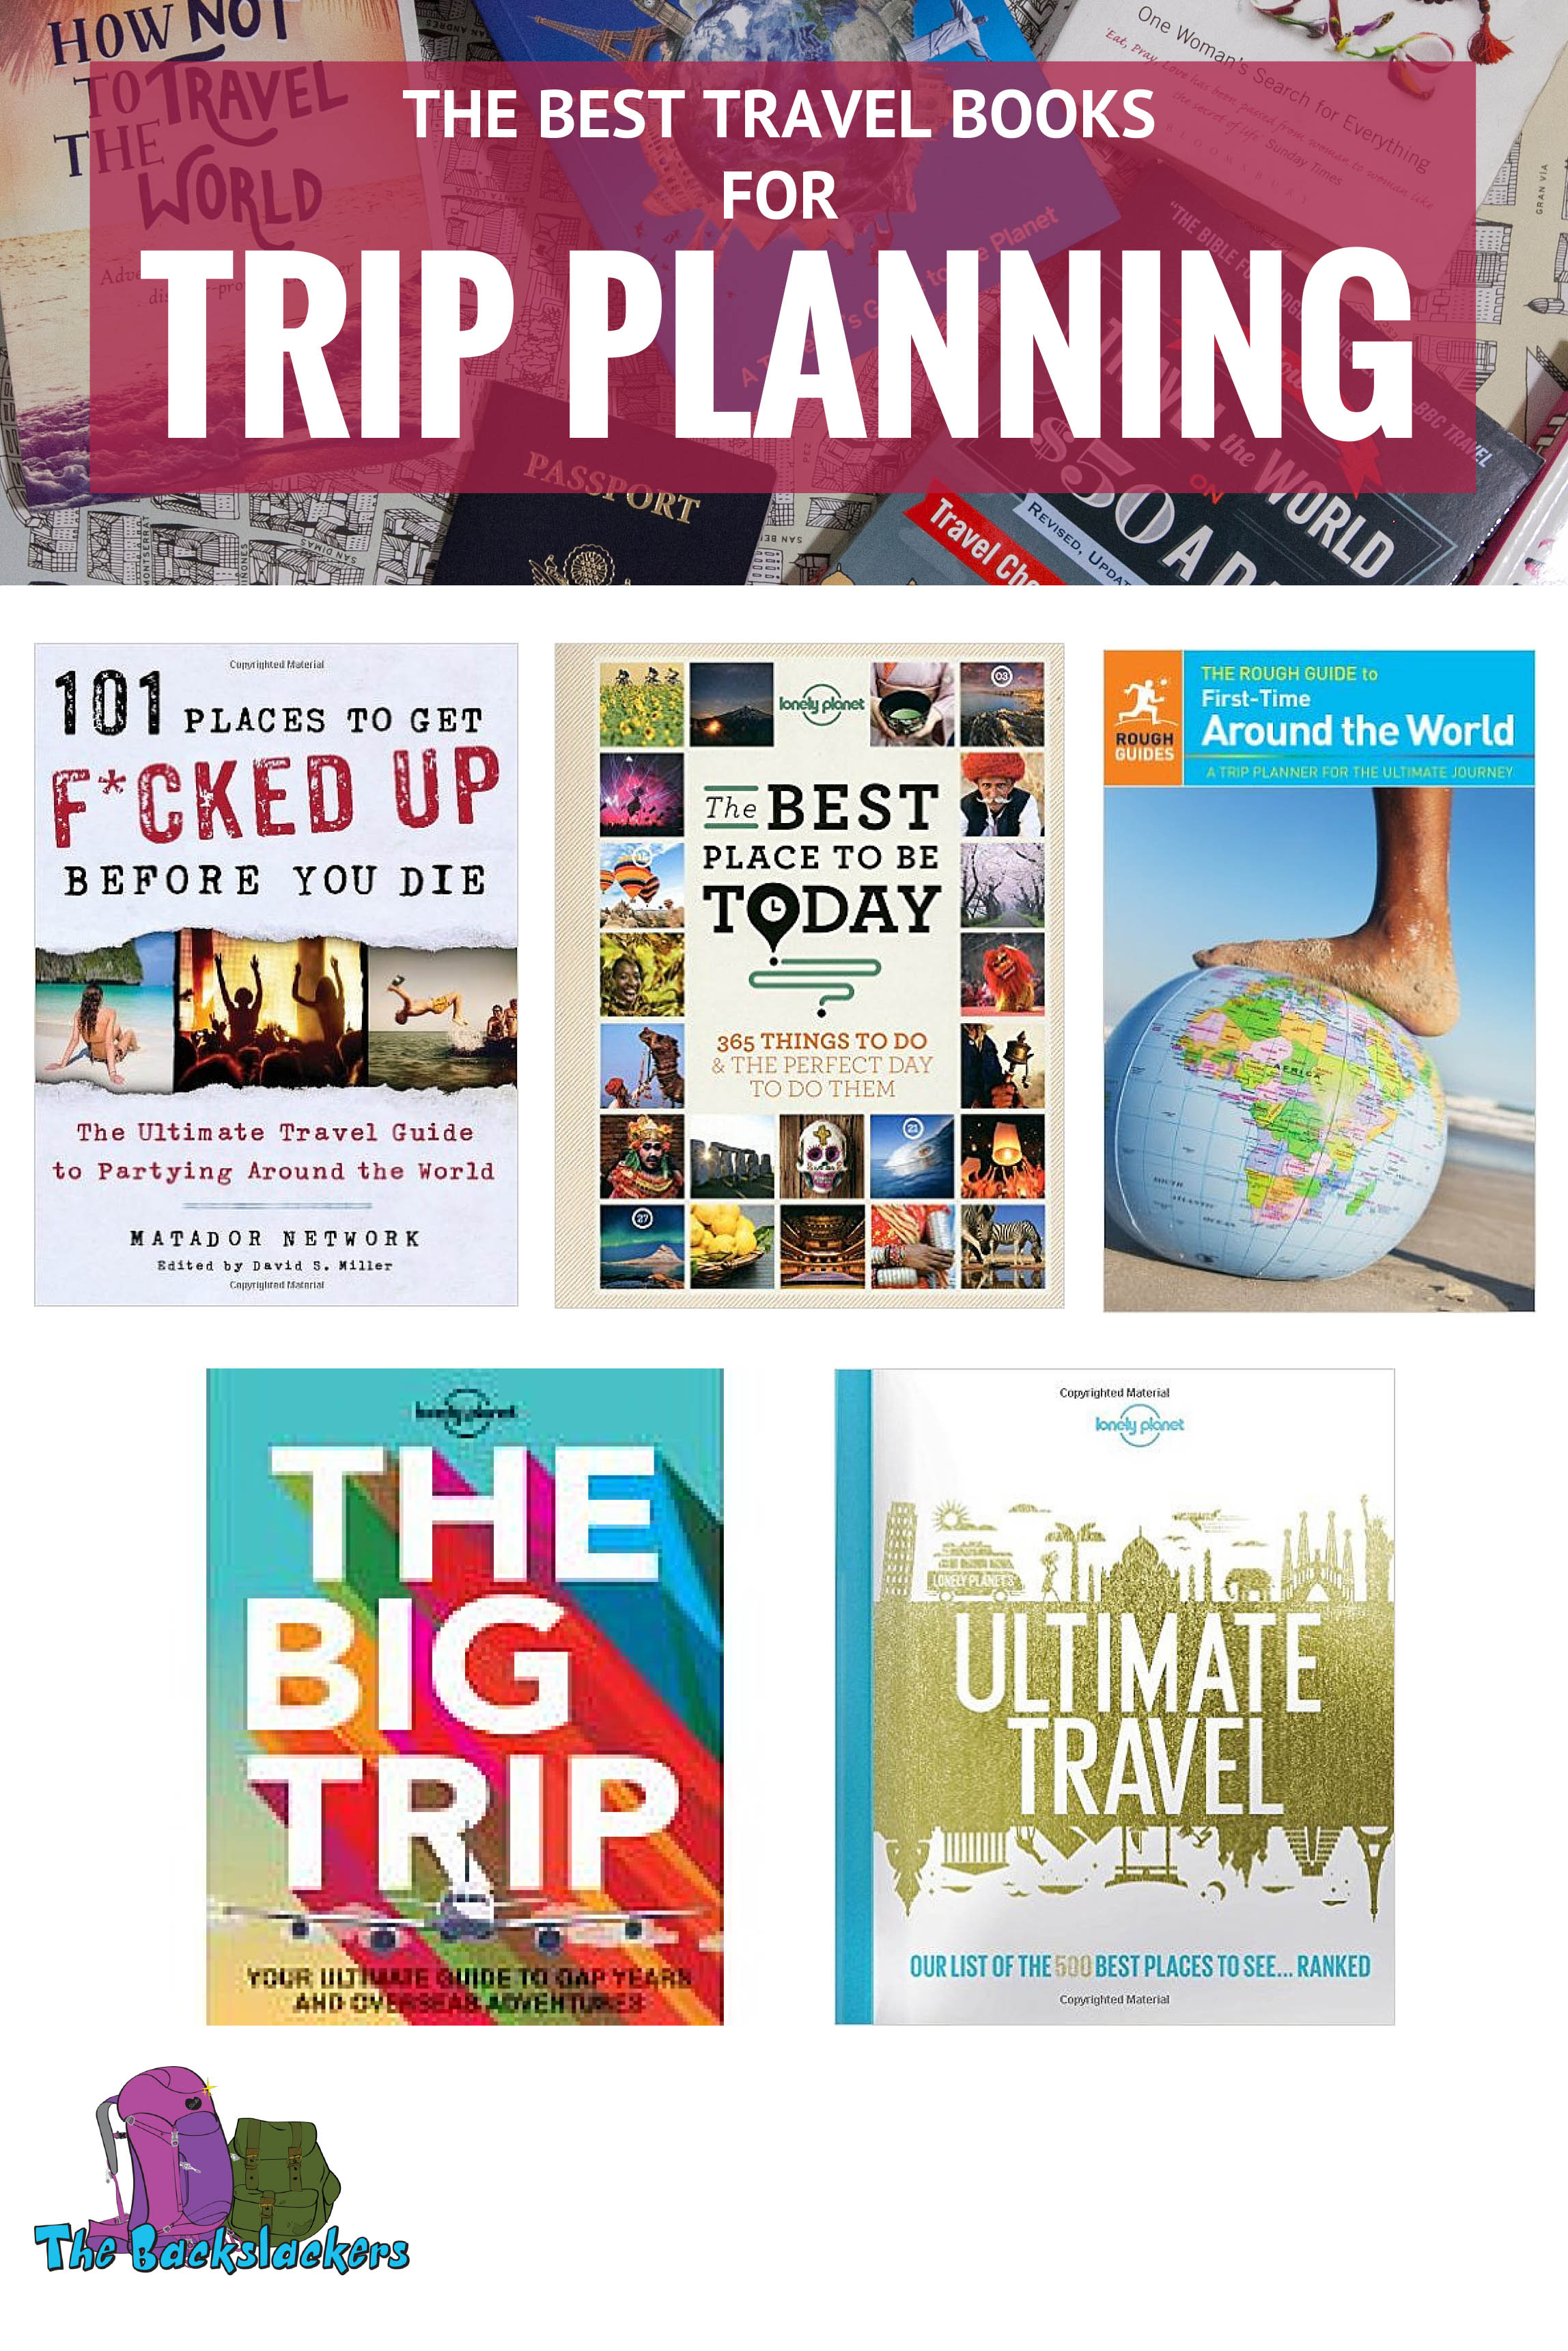 Best Travel Books for Trip Planning - Featuring 101 Places to Get F*cked Up Before You Die, Lonely Planet's The Best Places to Be Today, The Rough Guide to First-Time Around the World, The Big Trip, and Ultimate Travel.